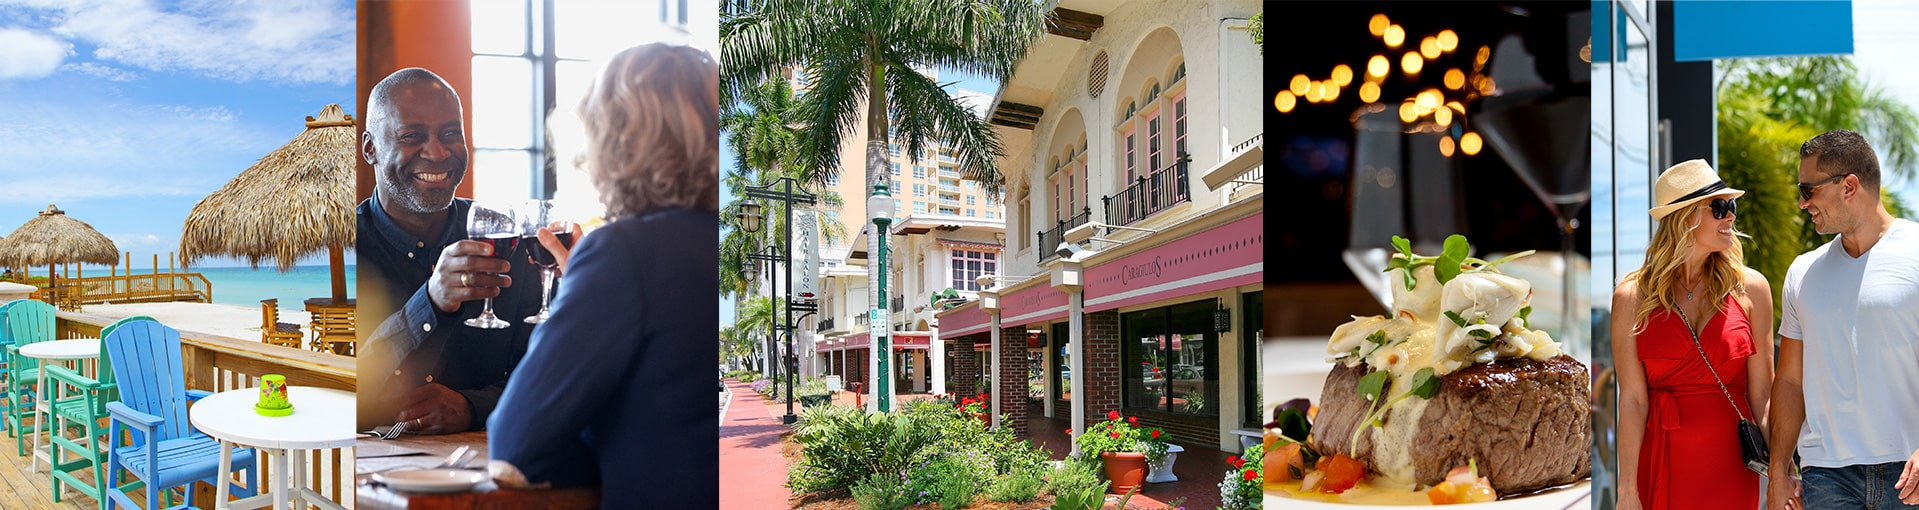 shopping and dining on longboat key